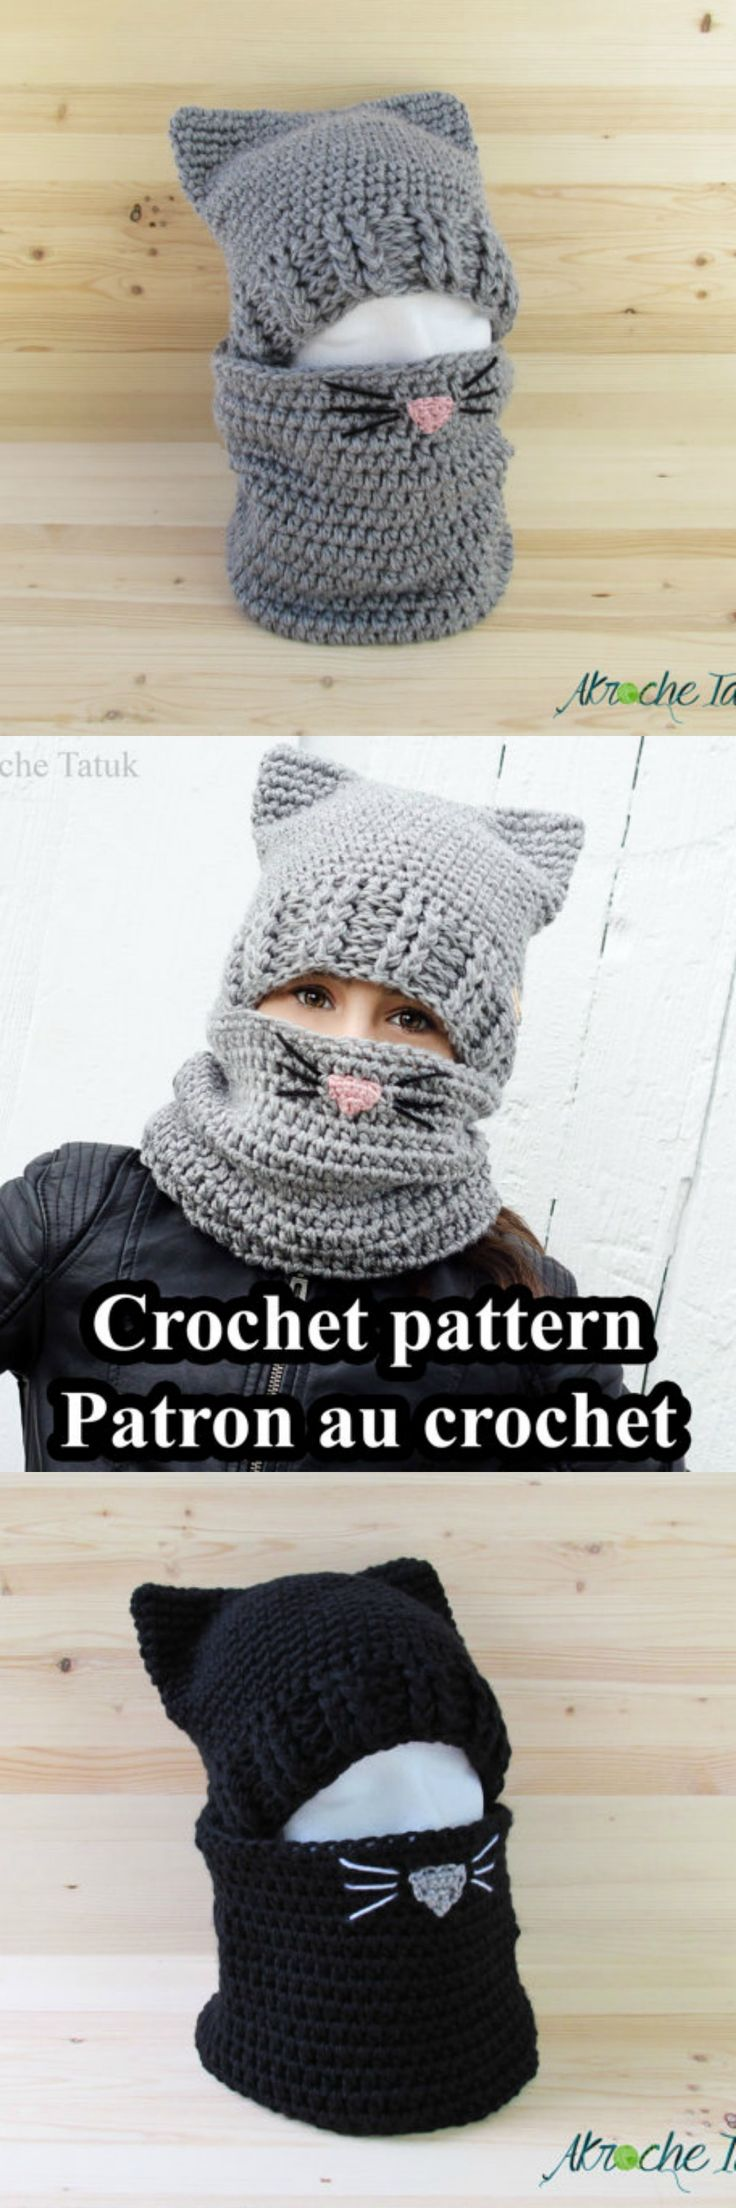 Cat hat crochet pattern. So cute and warm! #crochet #afflink #stitch #style #cozy #winterwear